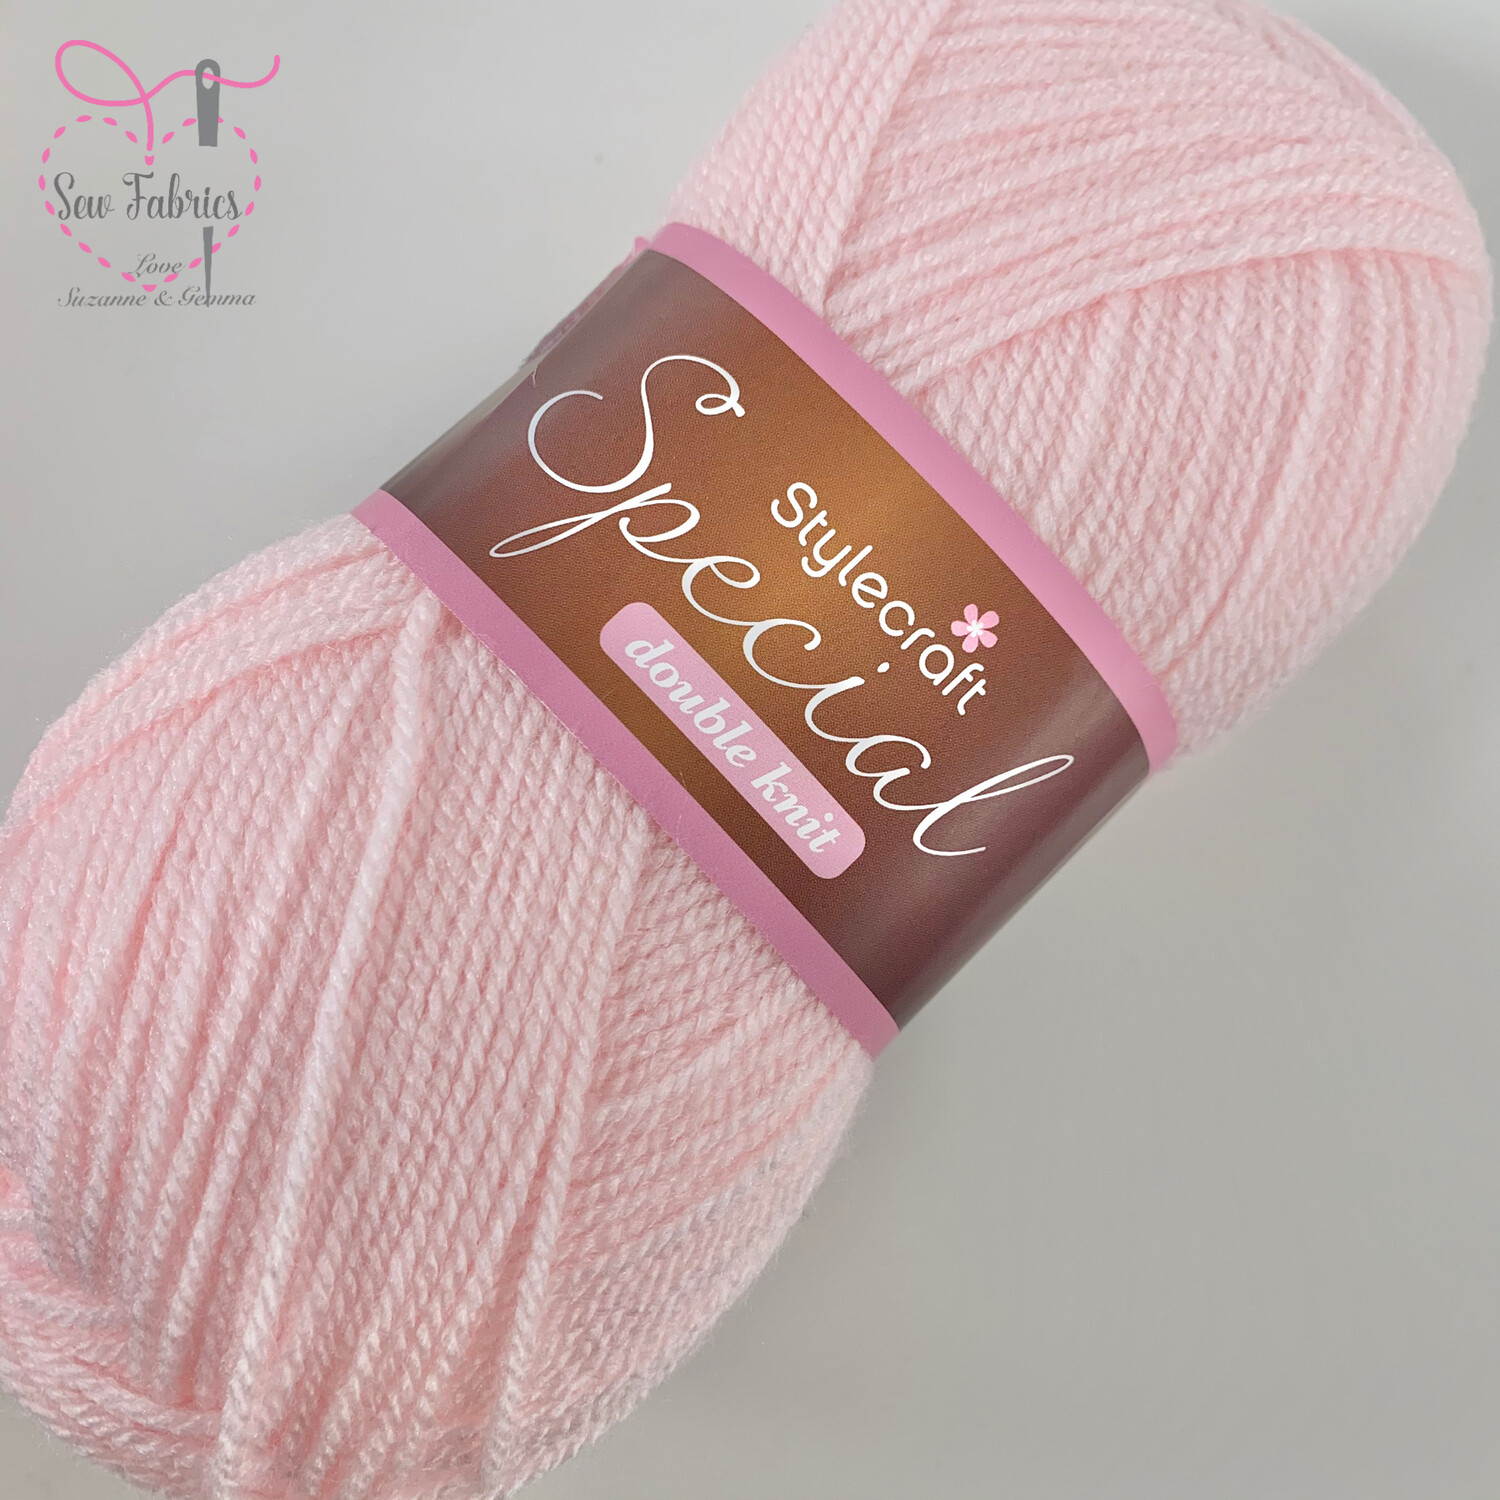 Stylecraft Special DK 100% Premium Acrylic Wool - Soft Peach  Buy More Than 1 Ball & Get 30% Off With Code STYLE30